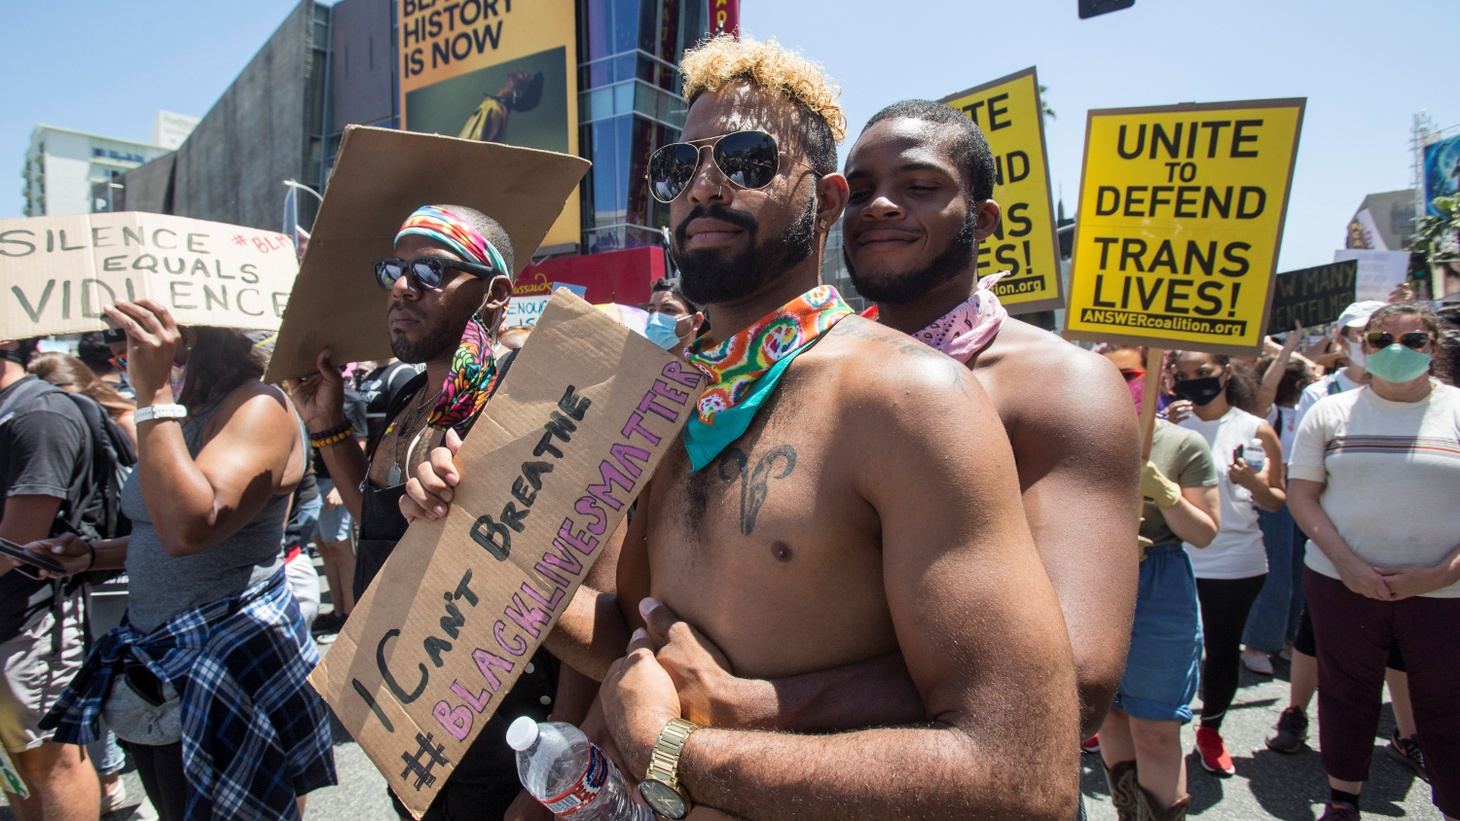 """""""Unite to defend trans lives!"""" is written on one of the signs in this All Black Lives Matter march in Hollywood, Los Angeles, California, U.S., June 14, 2020. The march was organized by Black LGBTQ+ leaders in the aftermath of the death of George Floyd."""